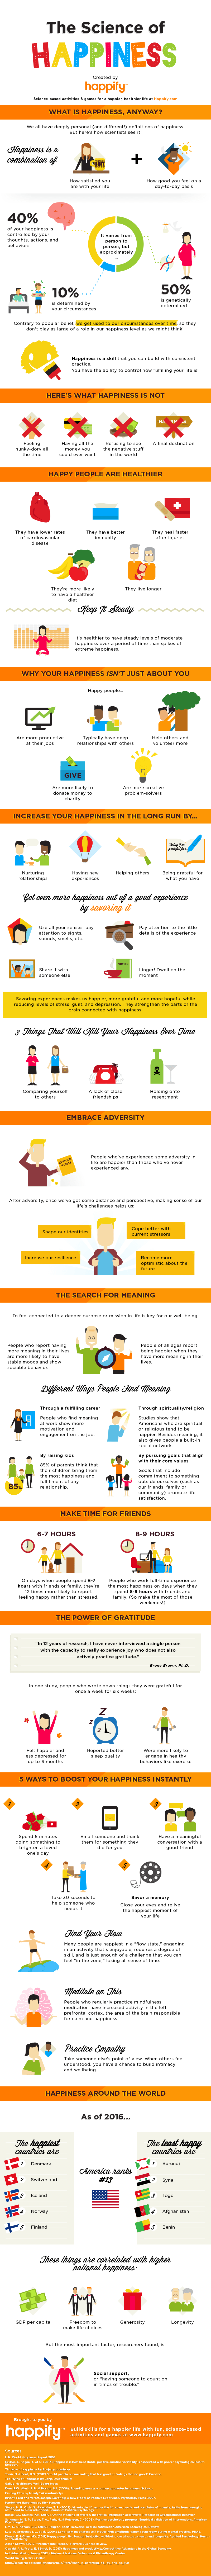 Happify infographic